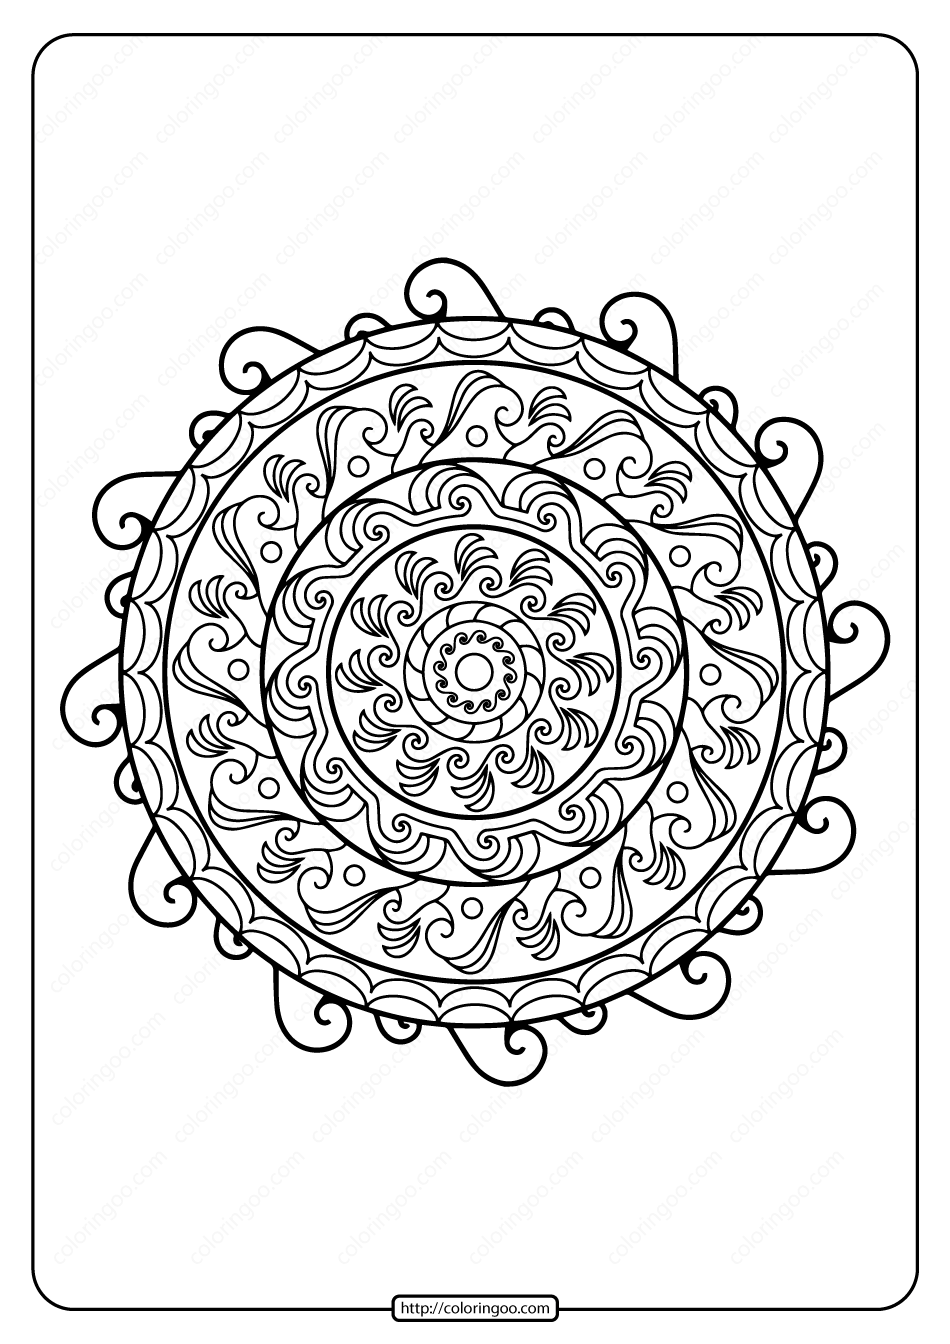 Printable PDF Coloring Book Pages for Adults 027